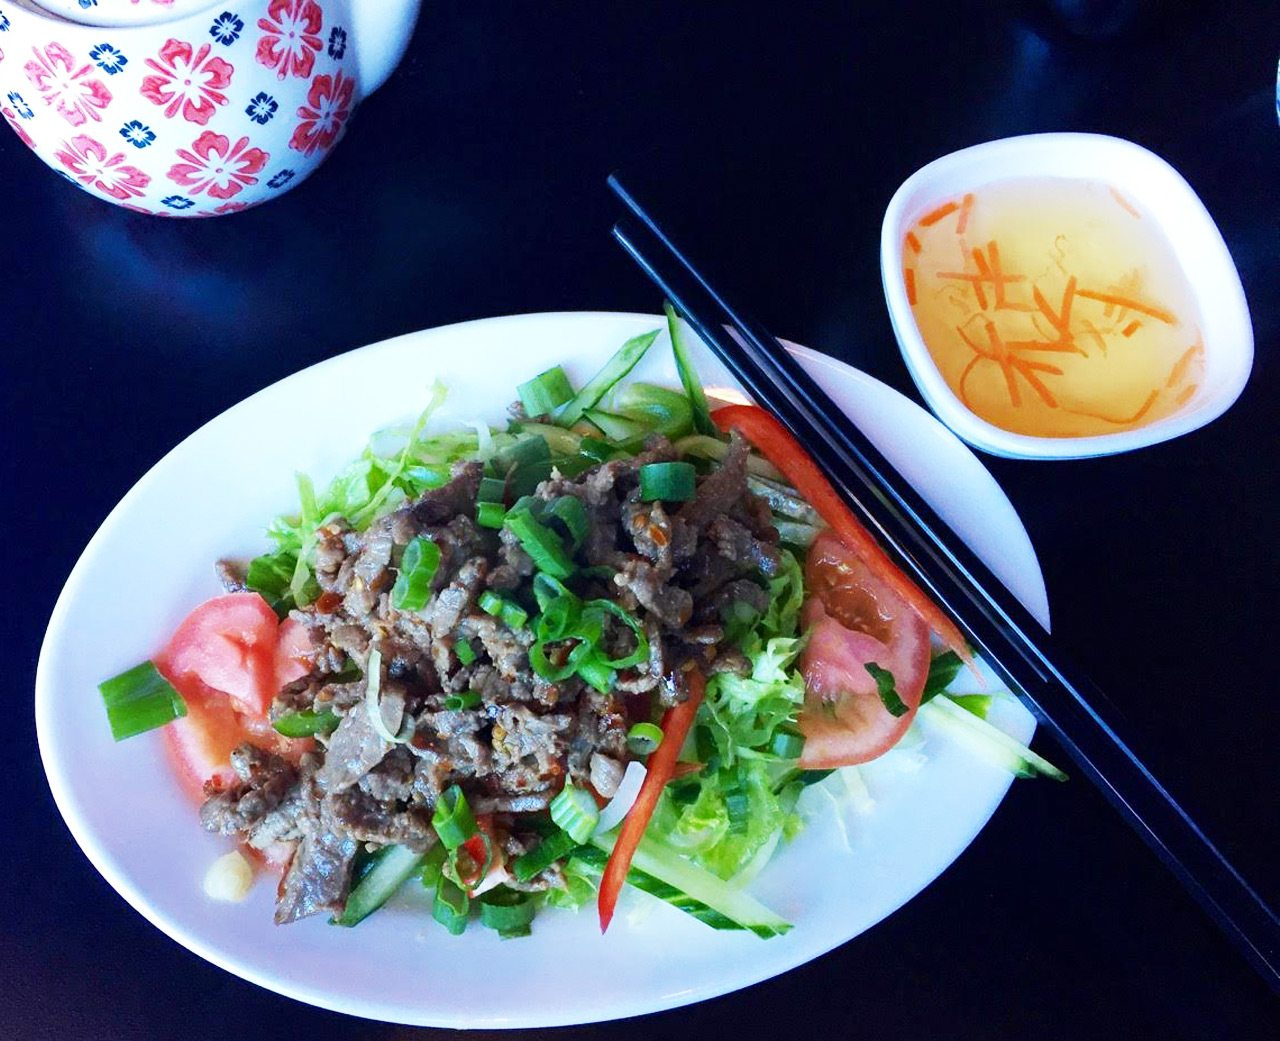 Pho Shack's The beef salad